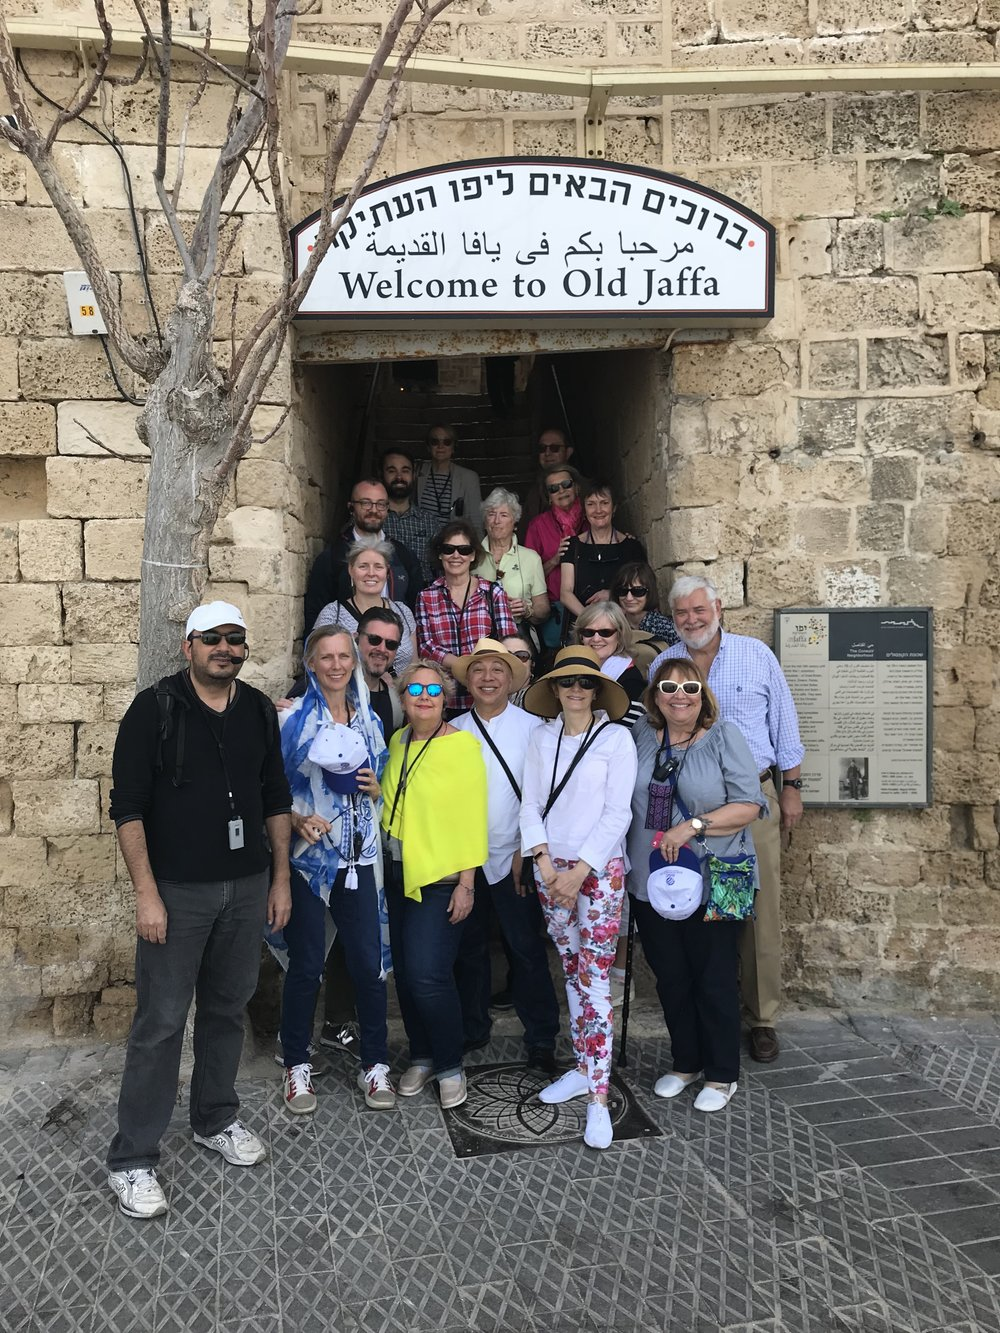 Visiting Old Jaffa